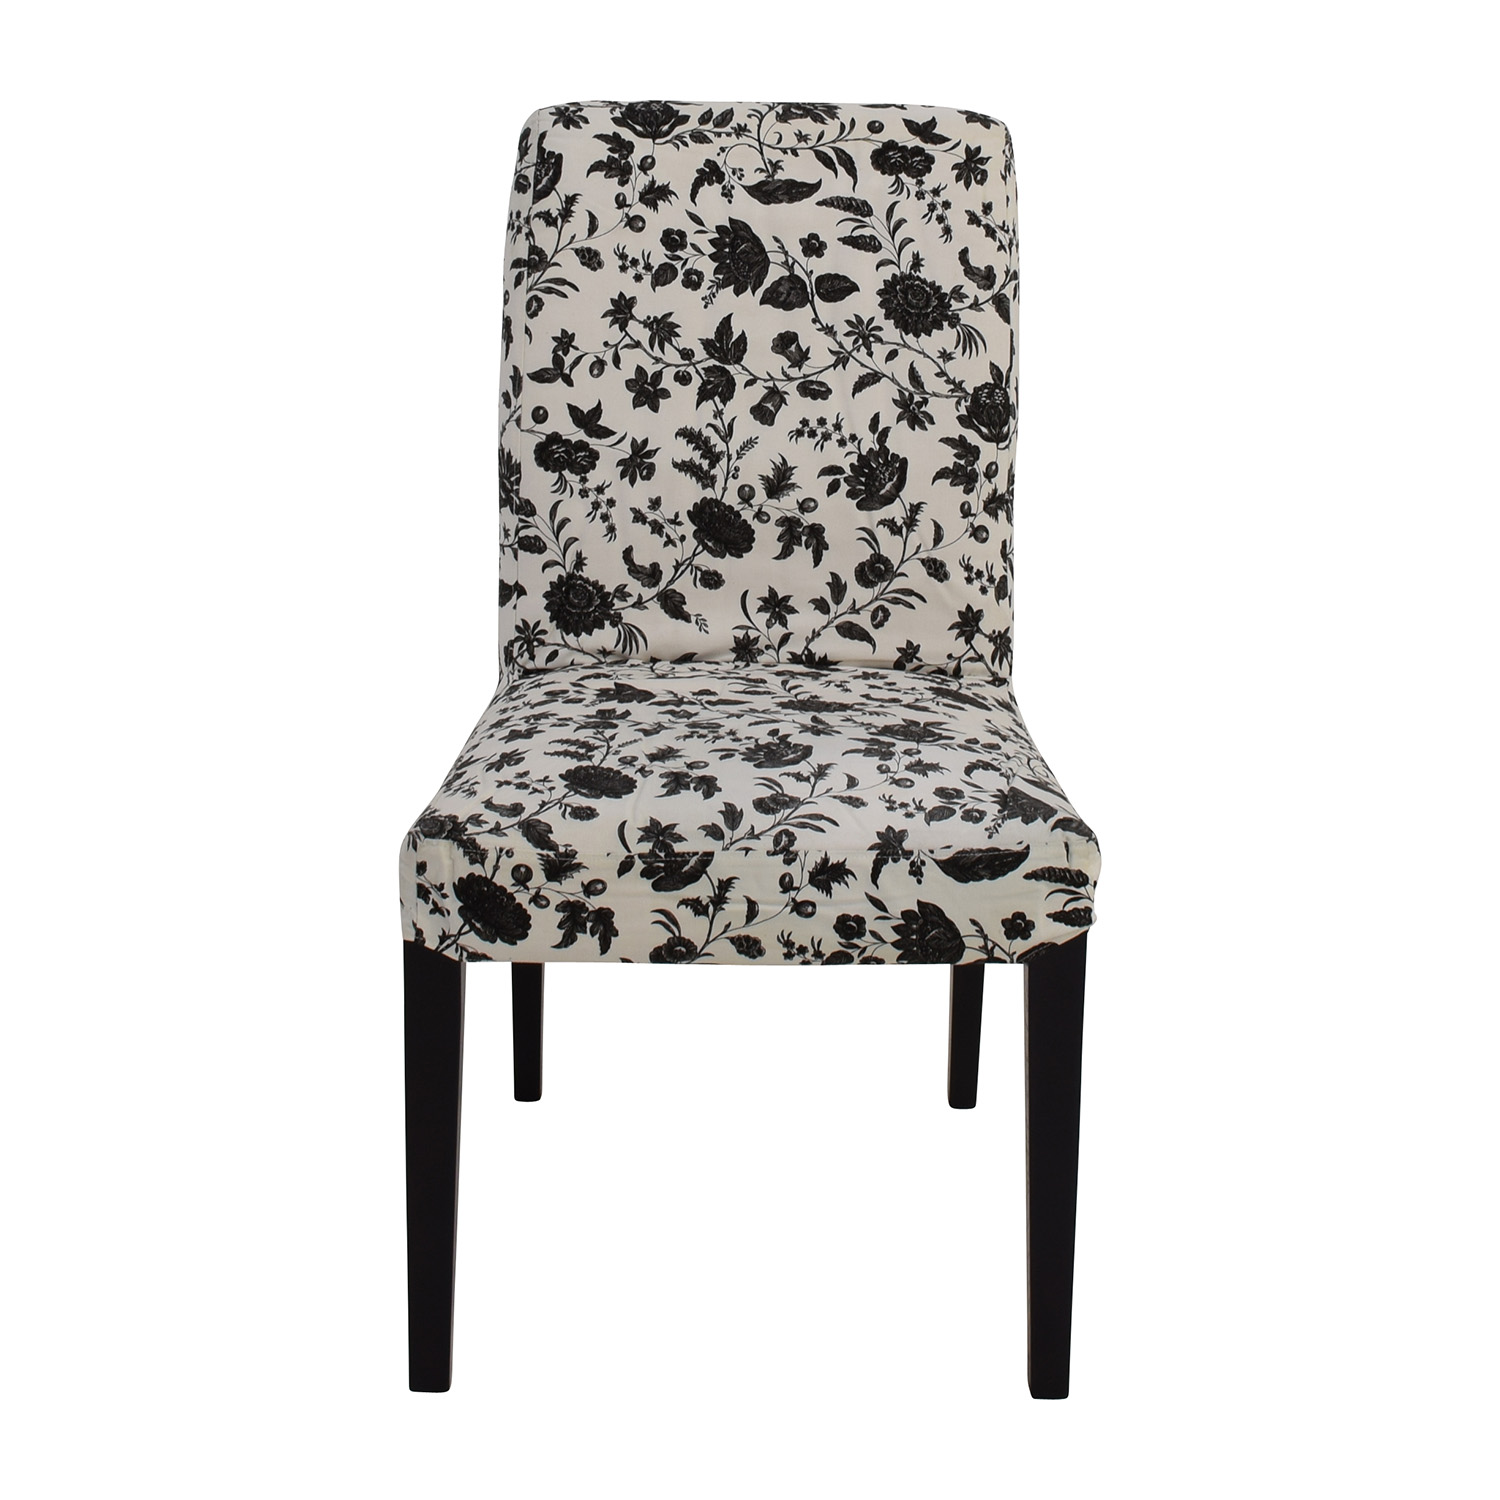 buy Black & White Floral Dining Chair Chairs